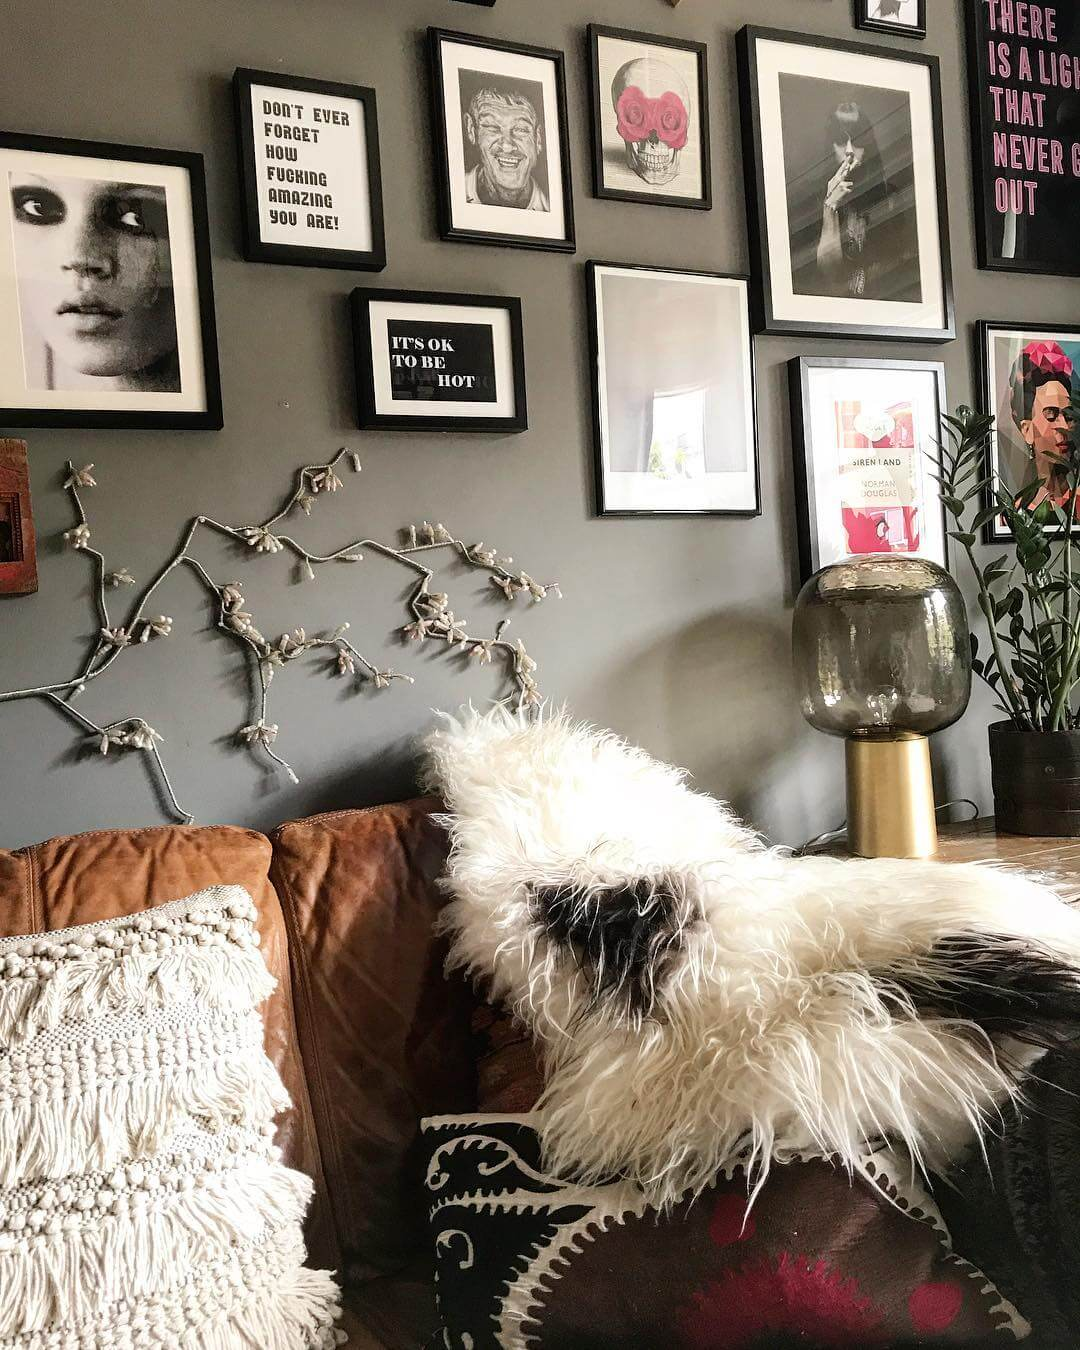 Here are 10 easy ways to infuse your home with positive vibes. Photo credit: @daniellellp via Instagram